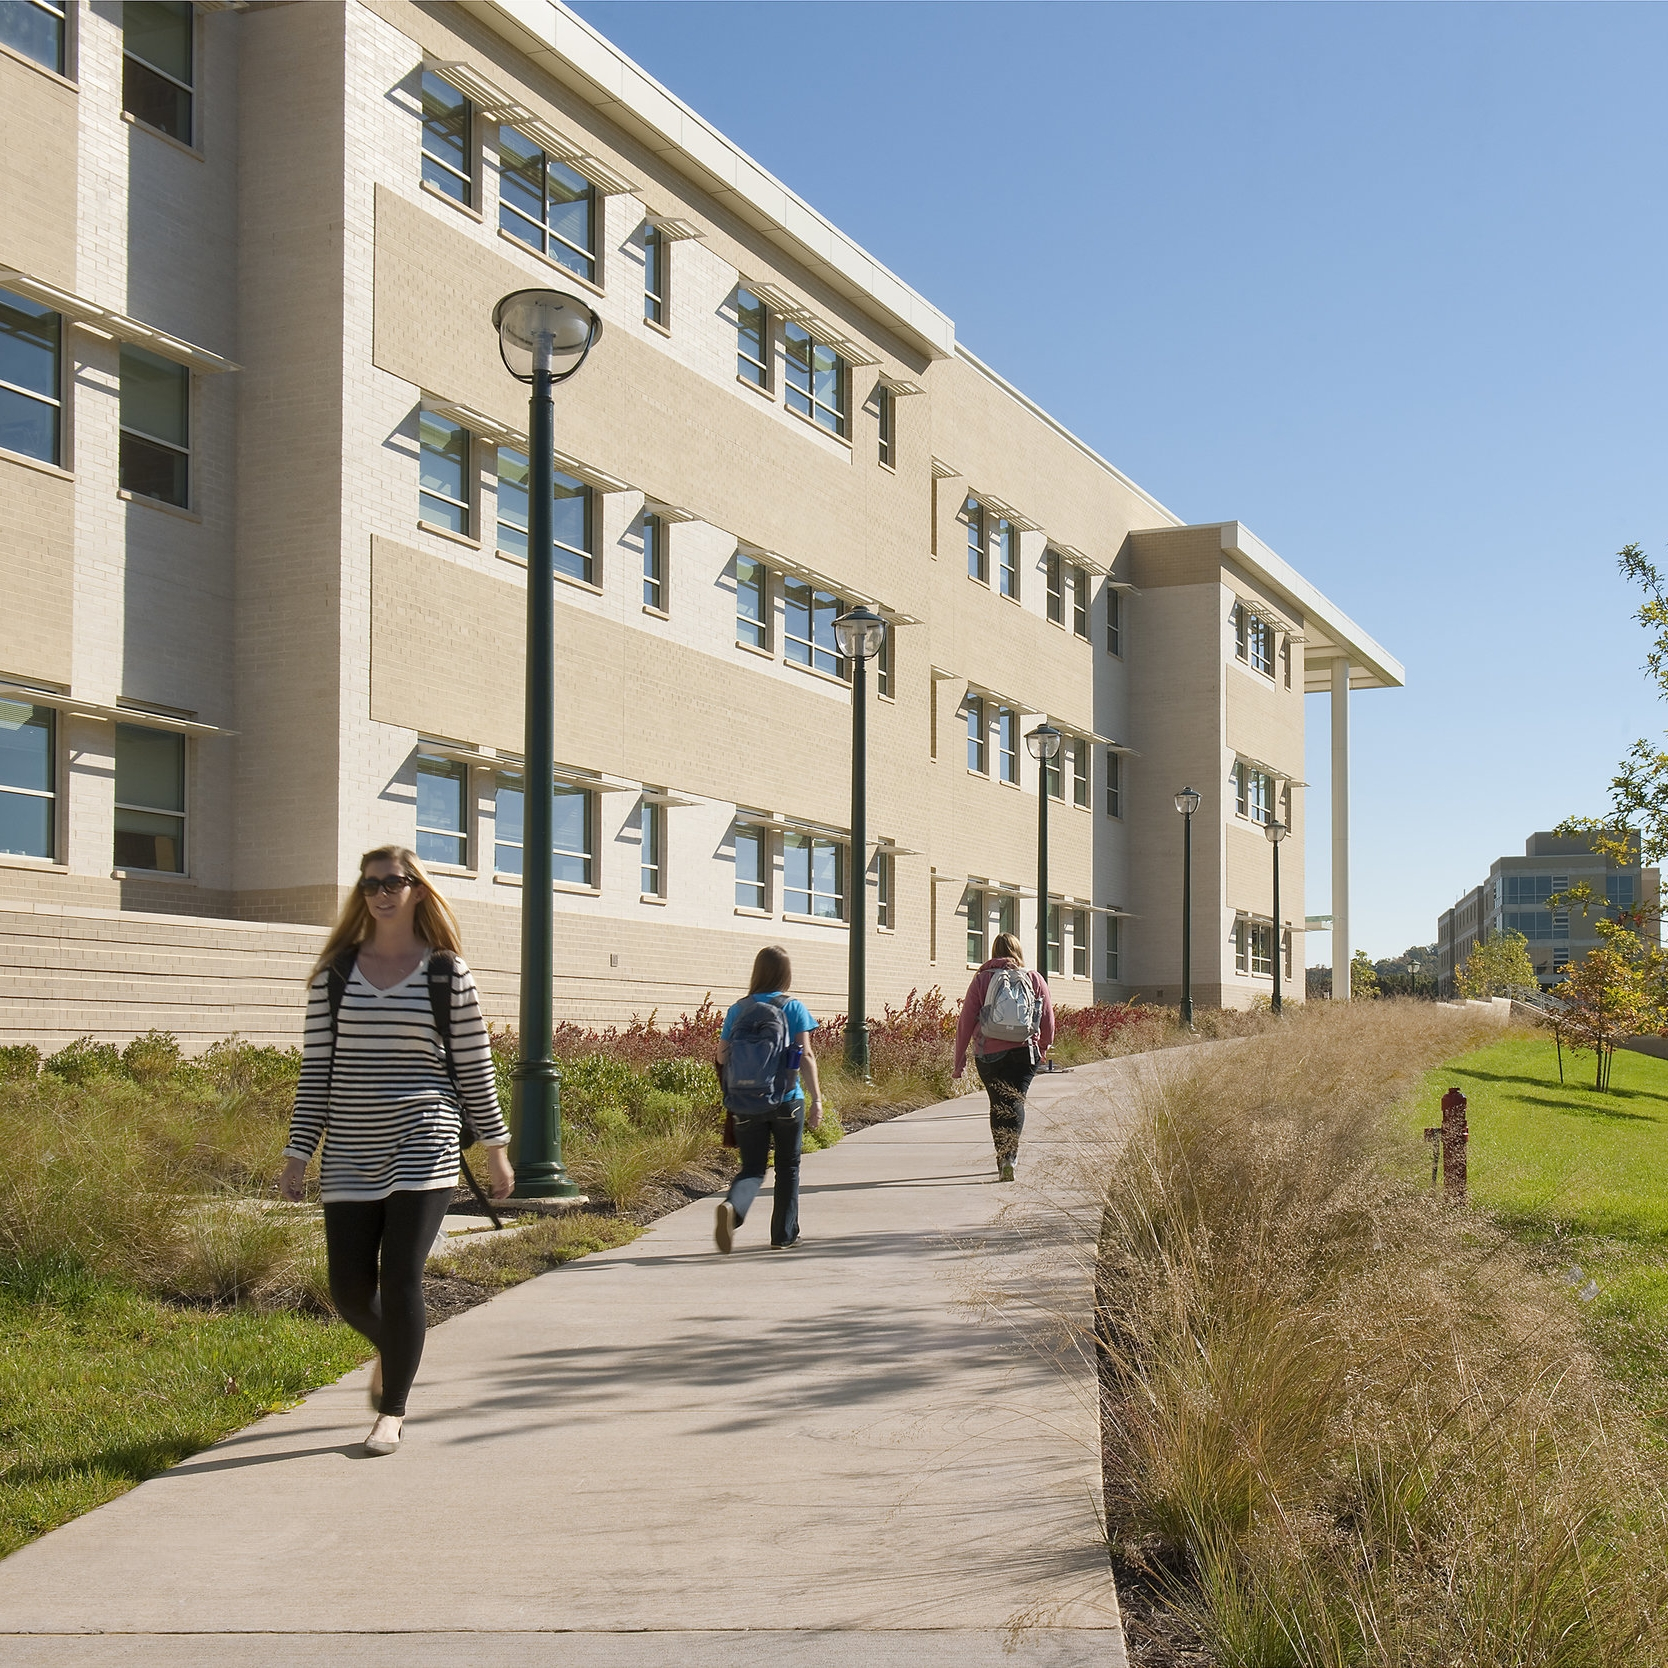 CAMPUS & INSTITUTIONAL - Ecologically Connected, Socially Vibrant